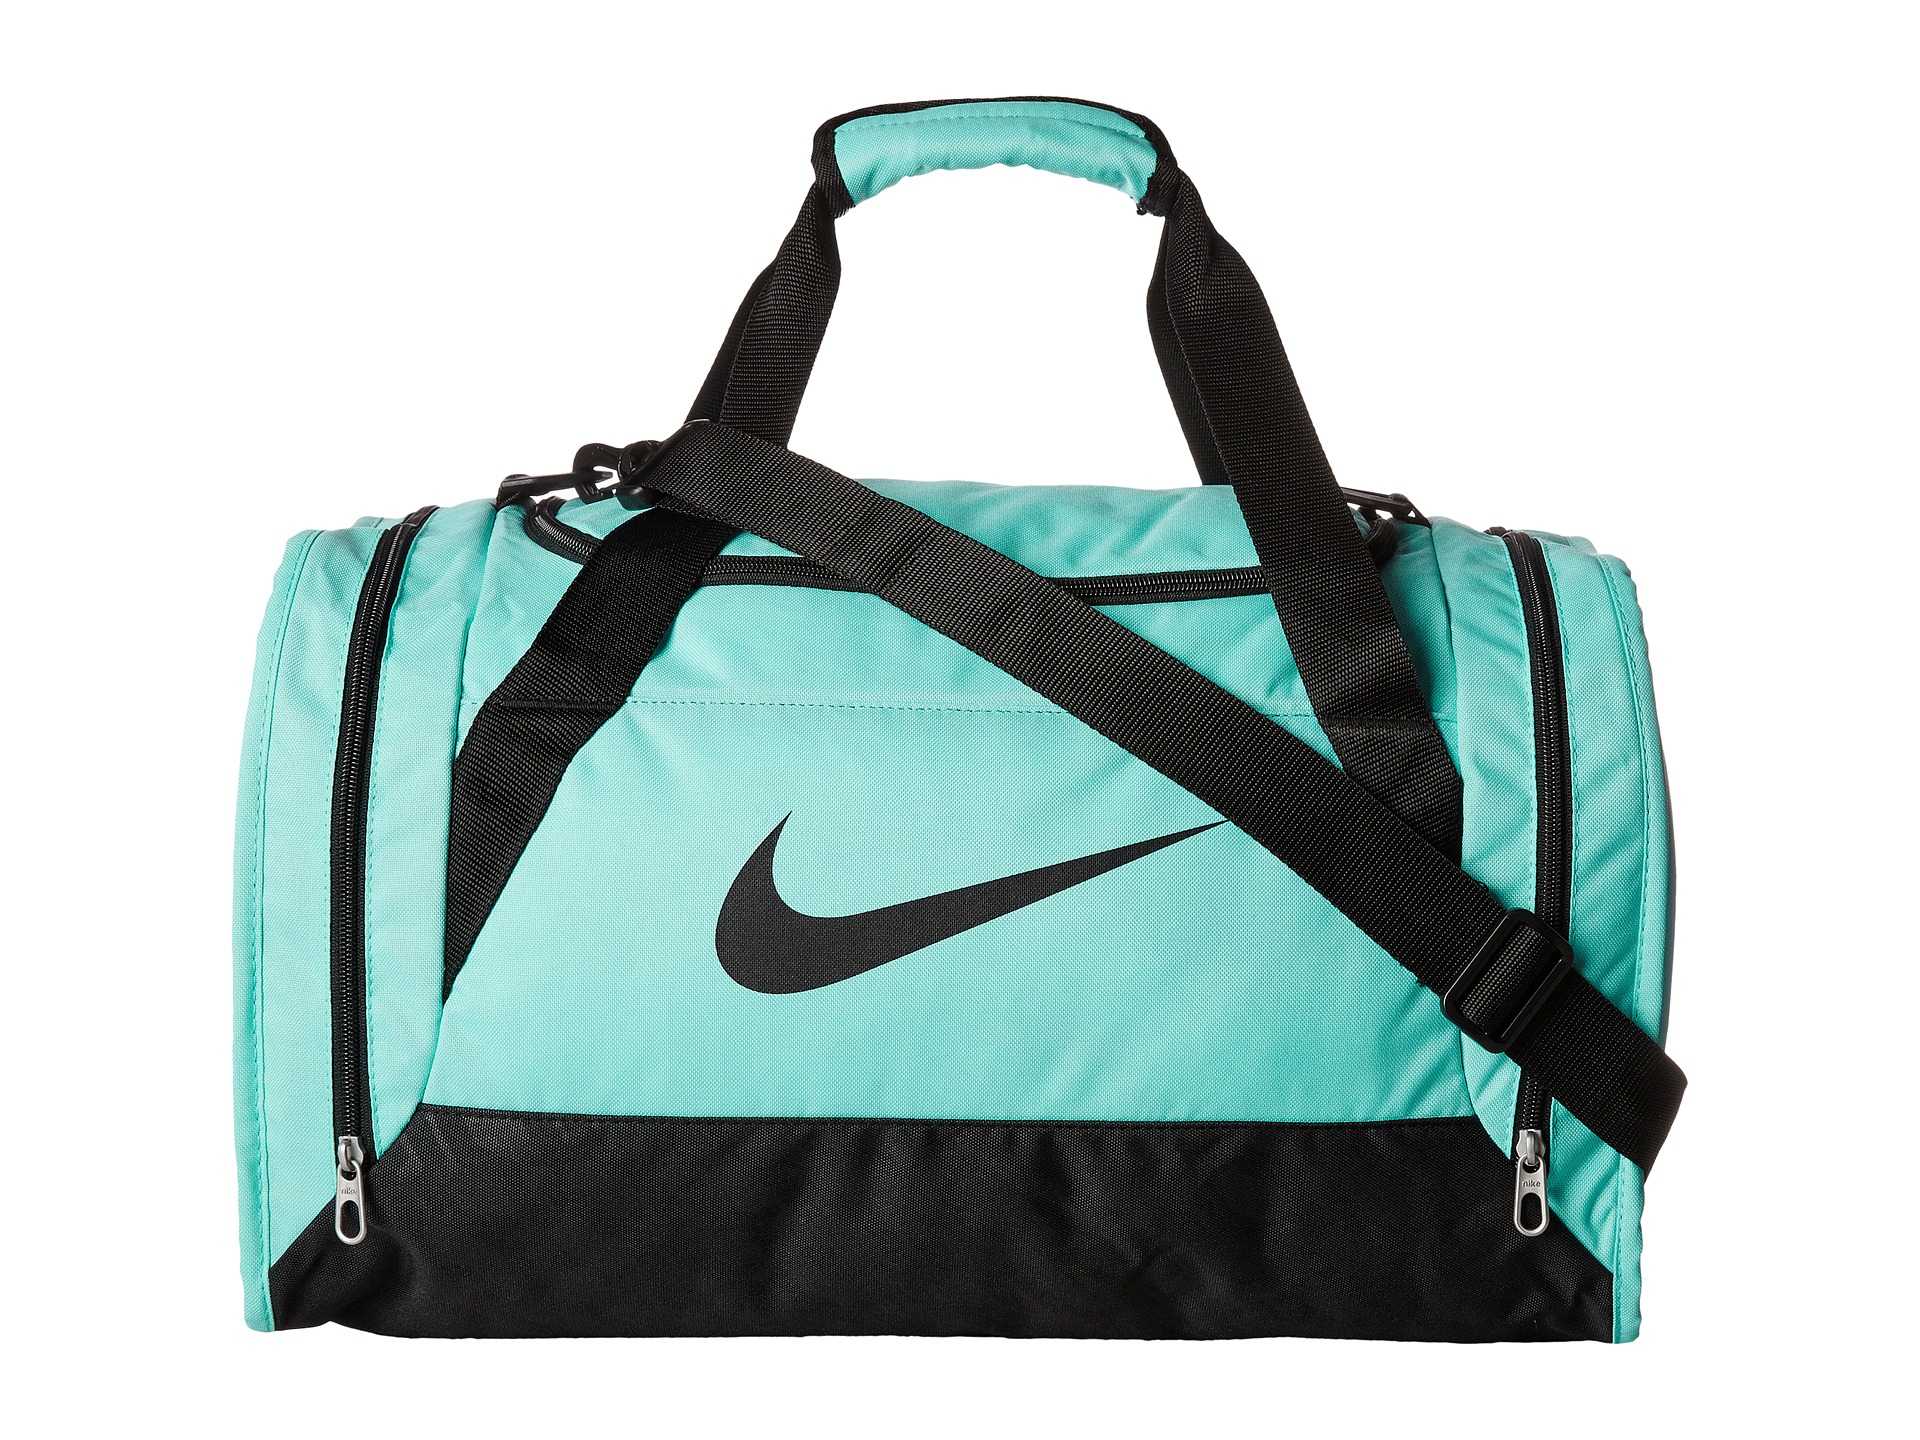 Gallery Previously Sold At Zappos Womens Duffel Bags